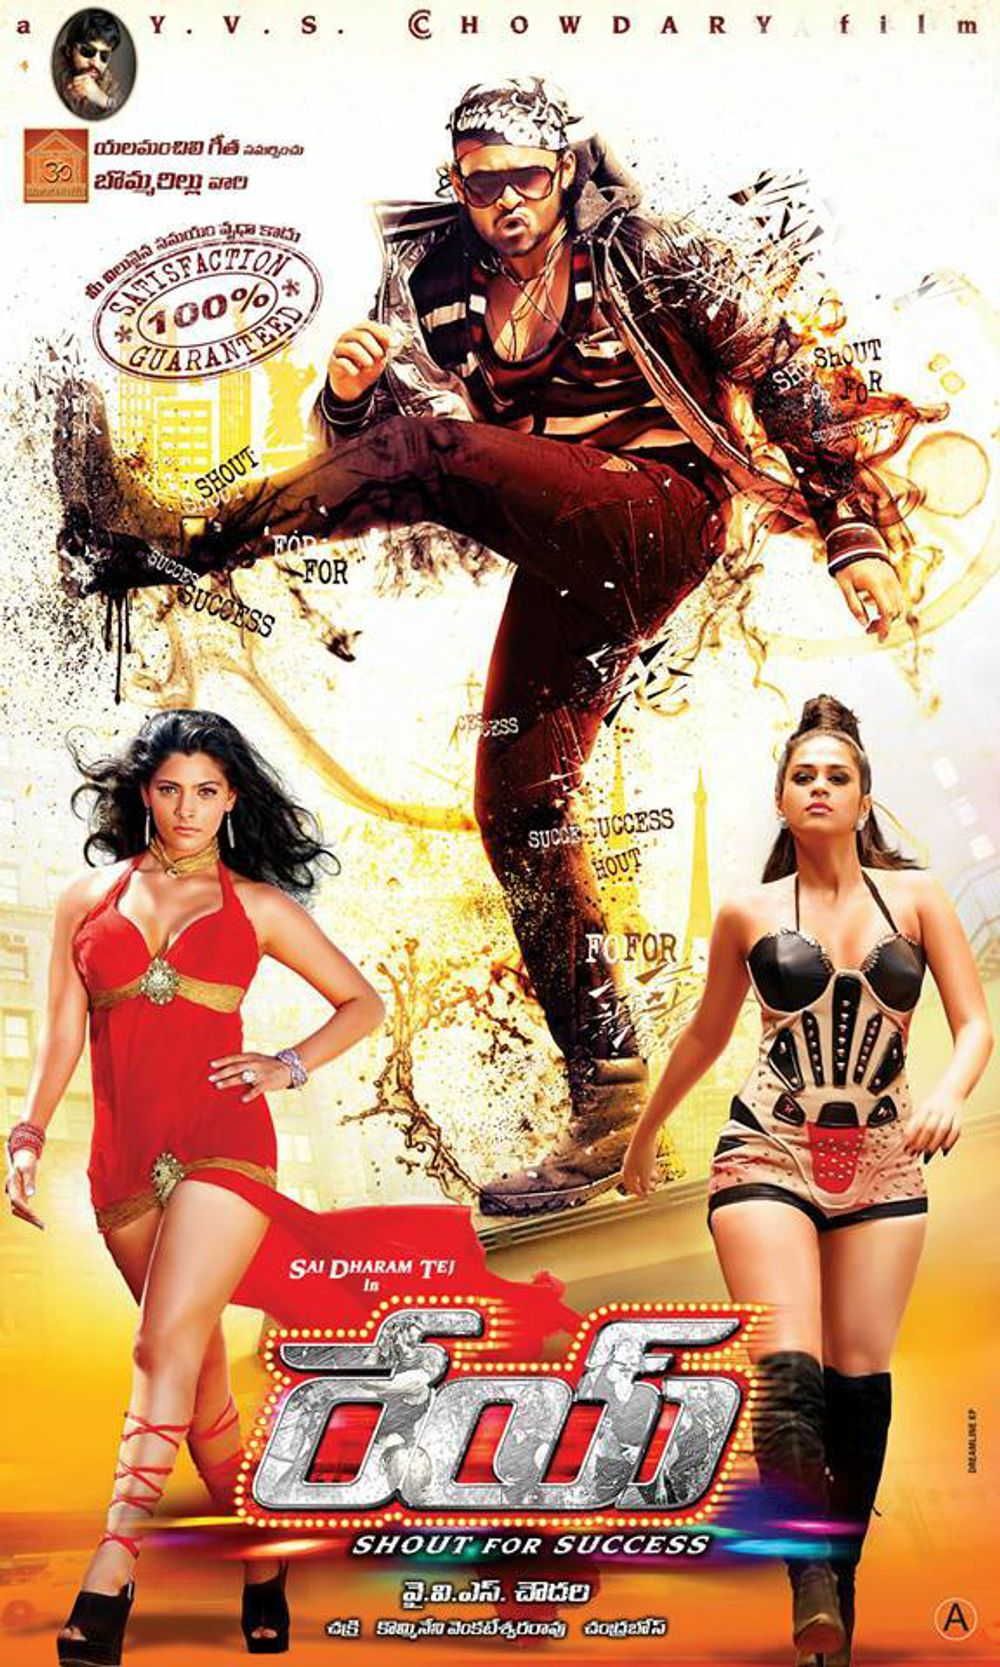 Rey (2021) Hindi Dubbed Movie HDRip 720p AAC